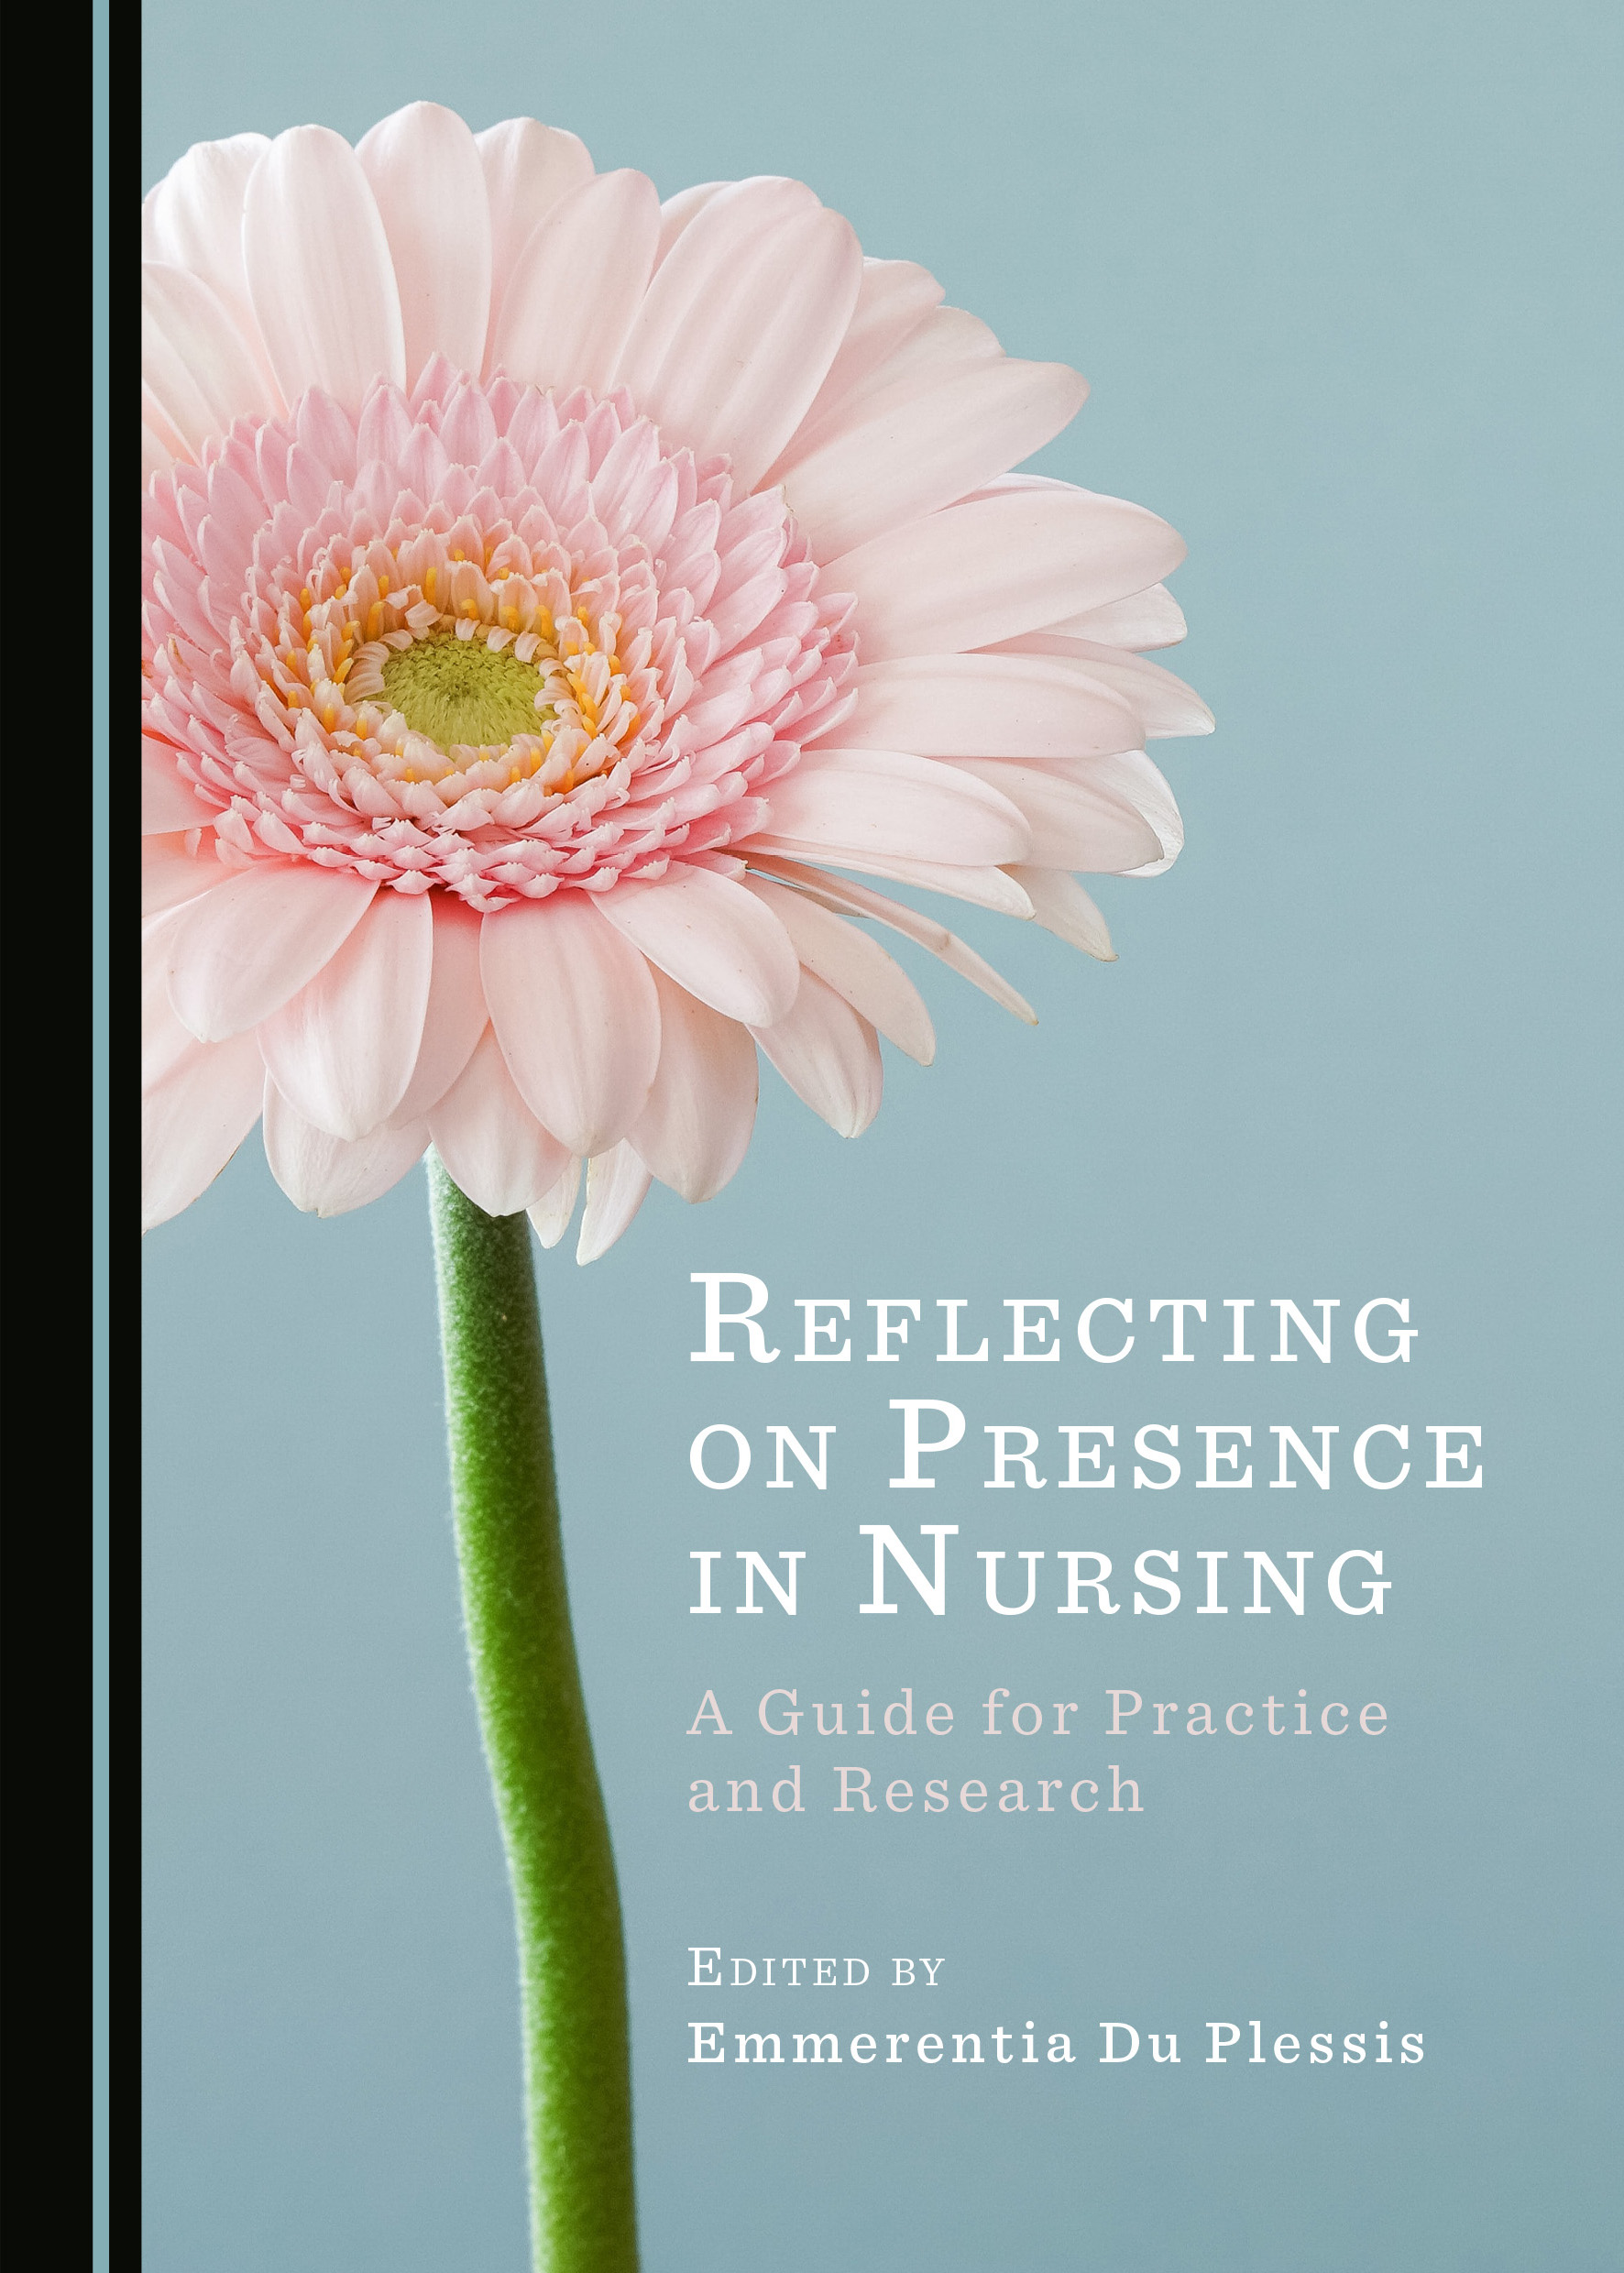 Reflecting on Presence in Nursing: A Guide for Practice and Research